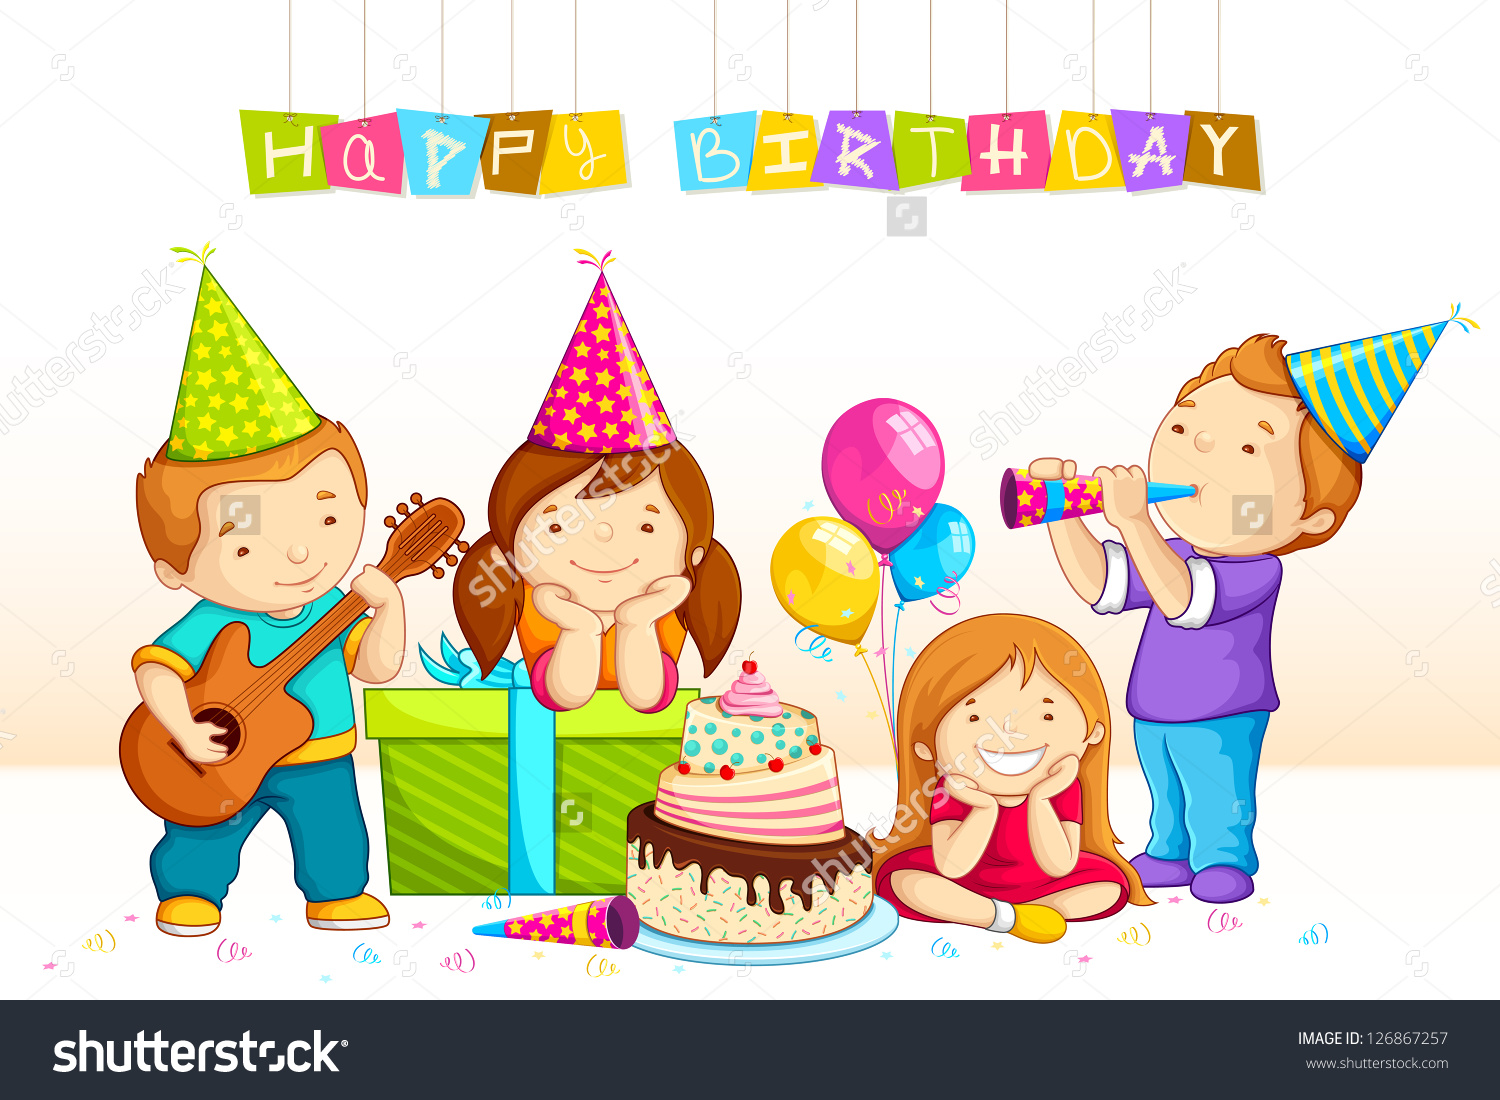 birthday celebration clipart ; birthday-kids-clipart-8